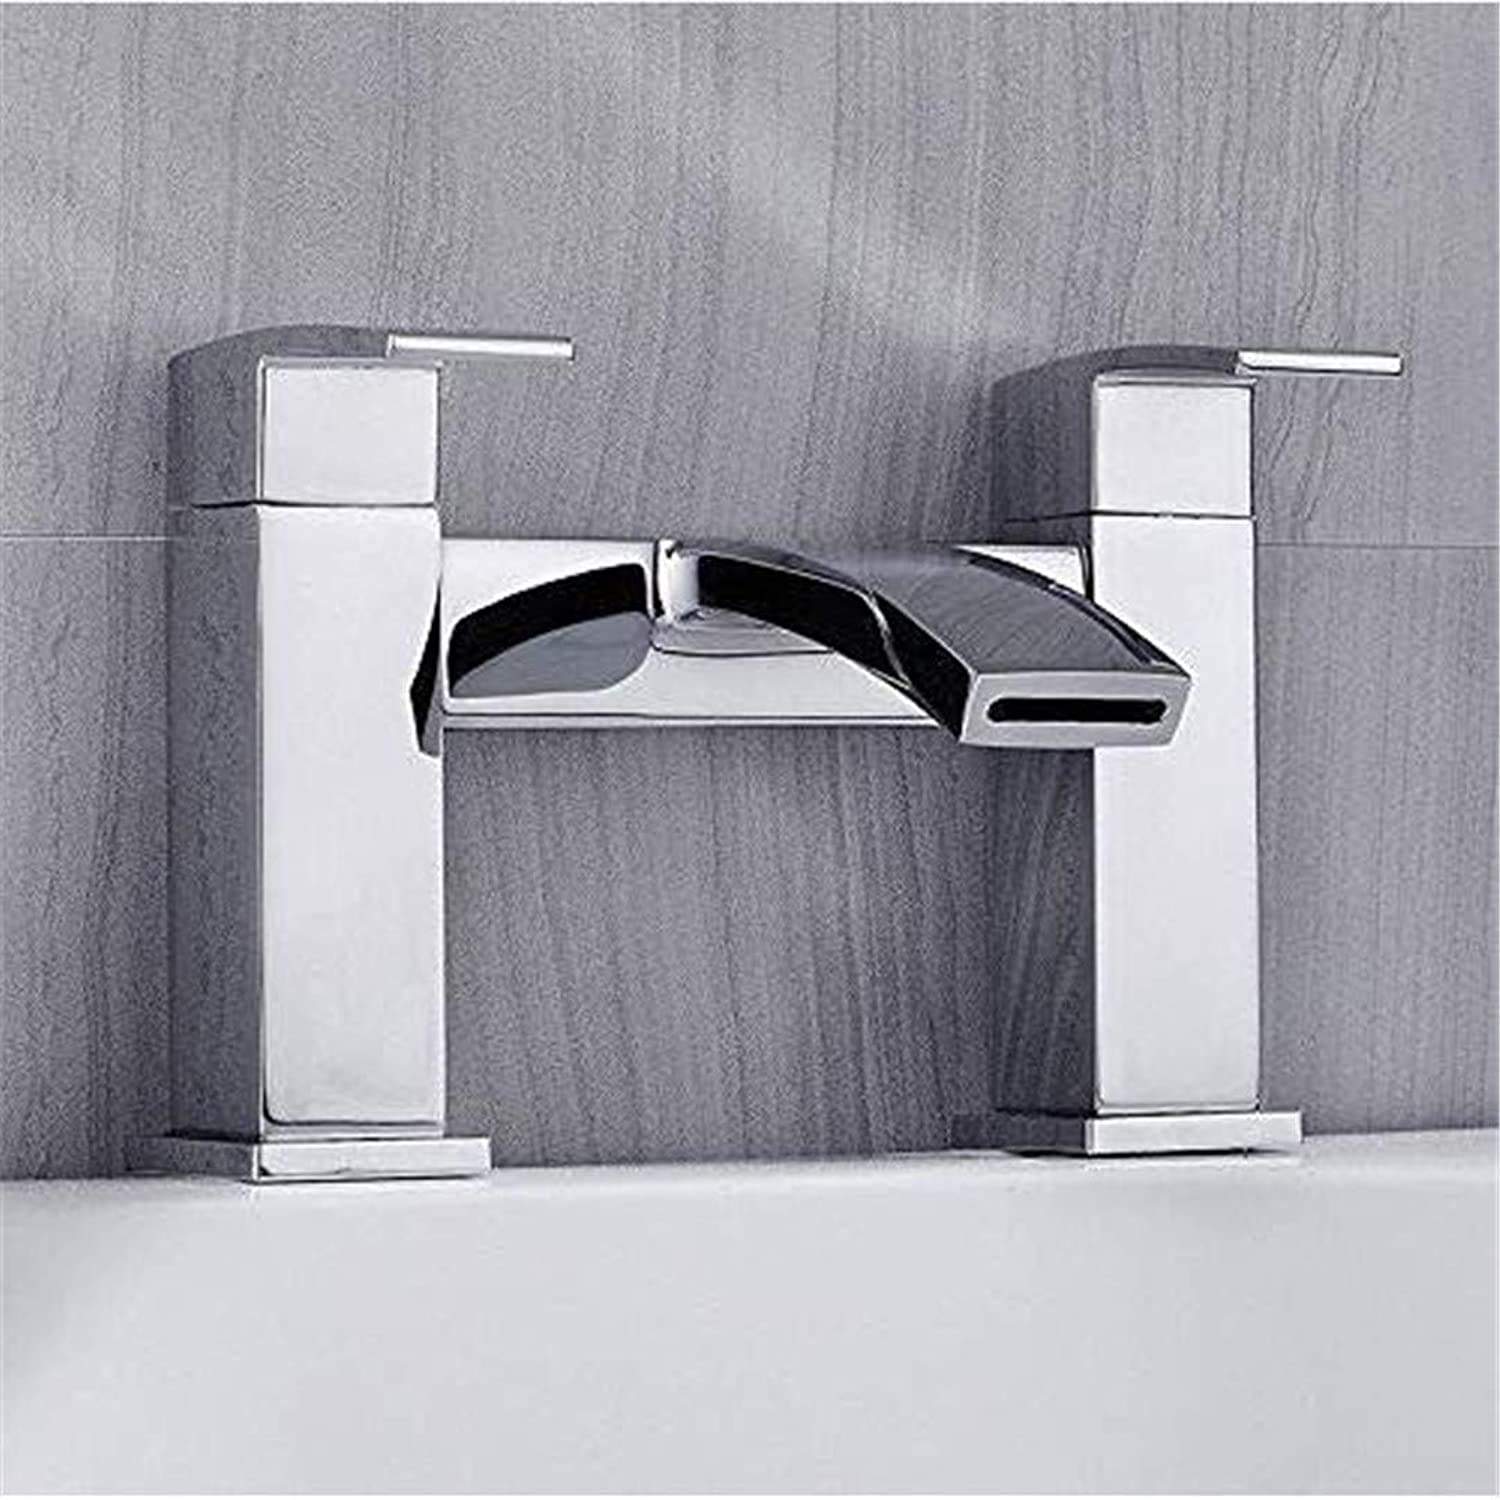 Oudan Faucet Basin Faucet Kitchen Faucetbathroom Sink Tapluxury Bath Bathroom Square Shower Faucet Mixer Tap with Shower Waterproof Shower Faucets Tub Chrome (color   -, Size   -)